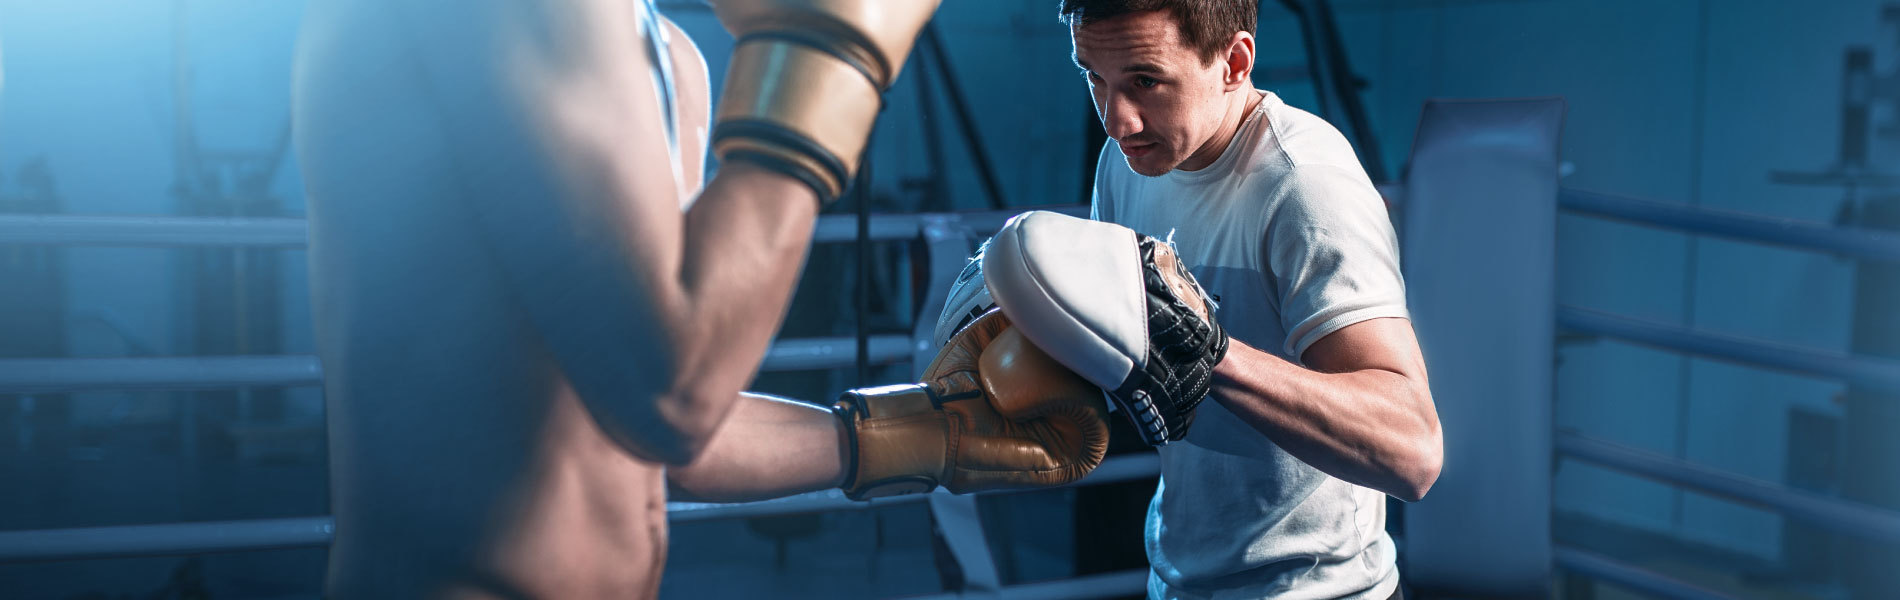 The_Benefits_of_Sparring_at_your_Martial_Arts_School_1900x600.jpg